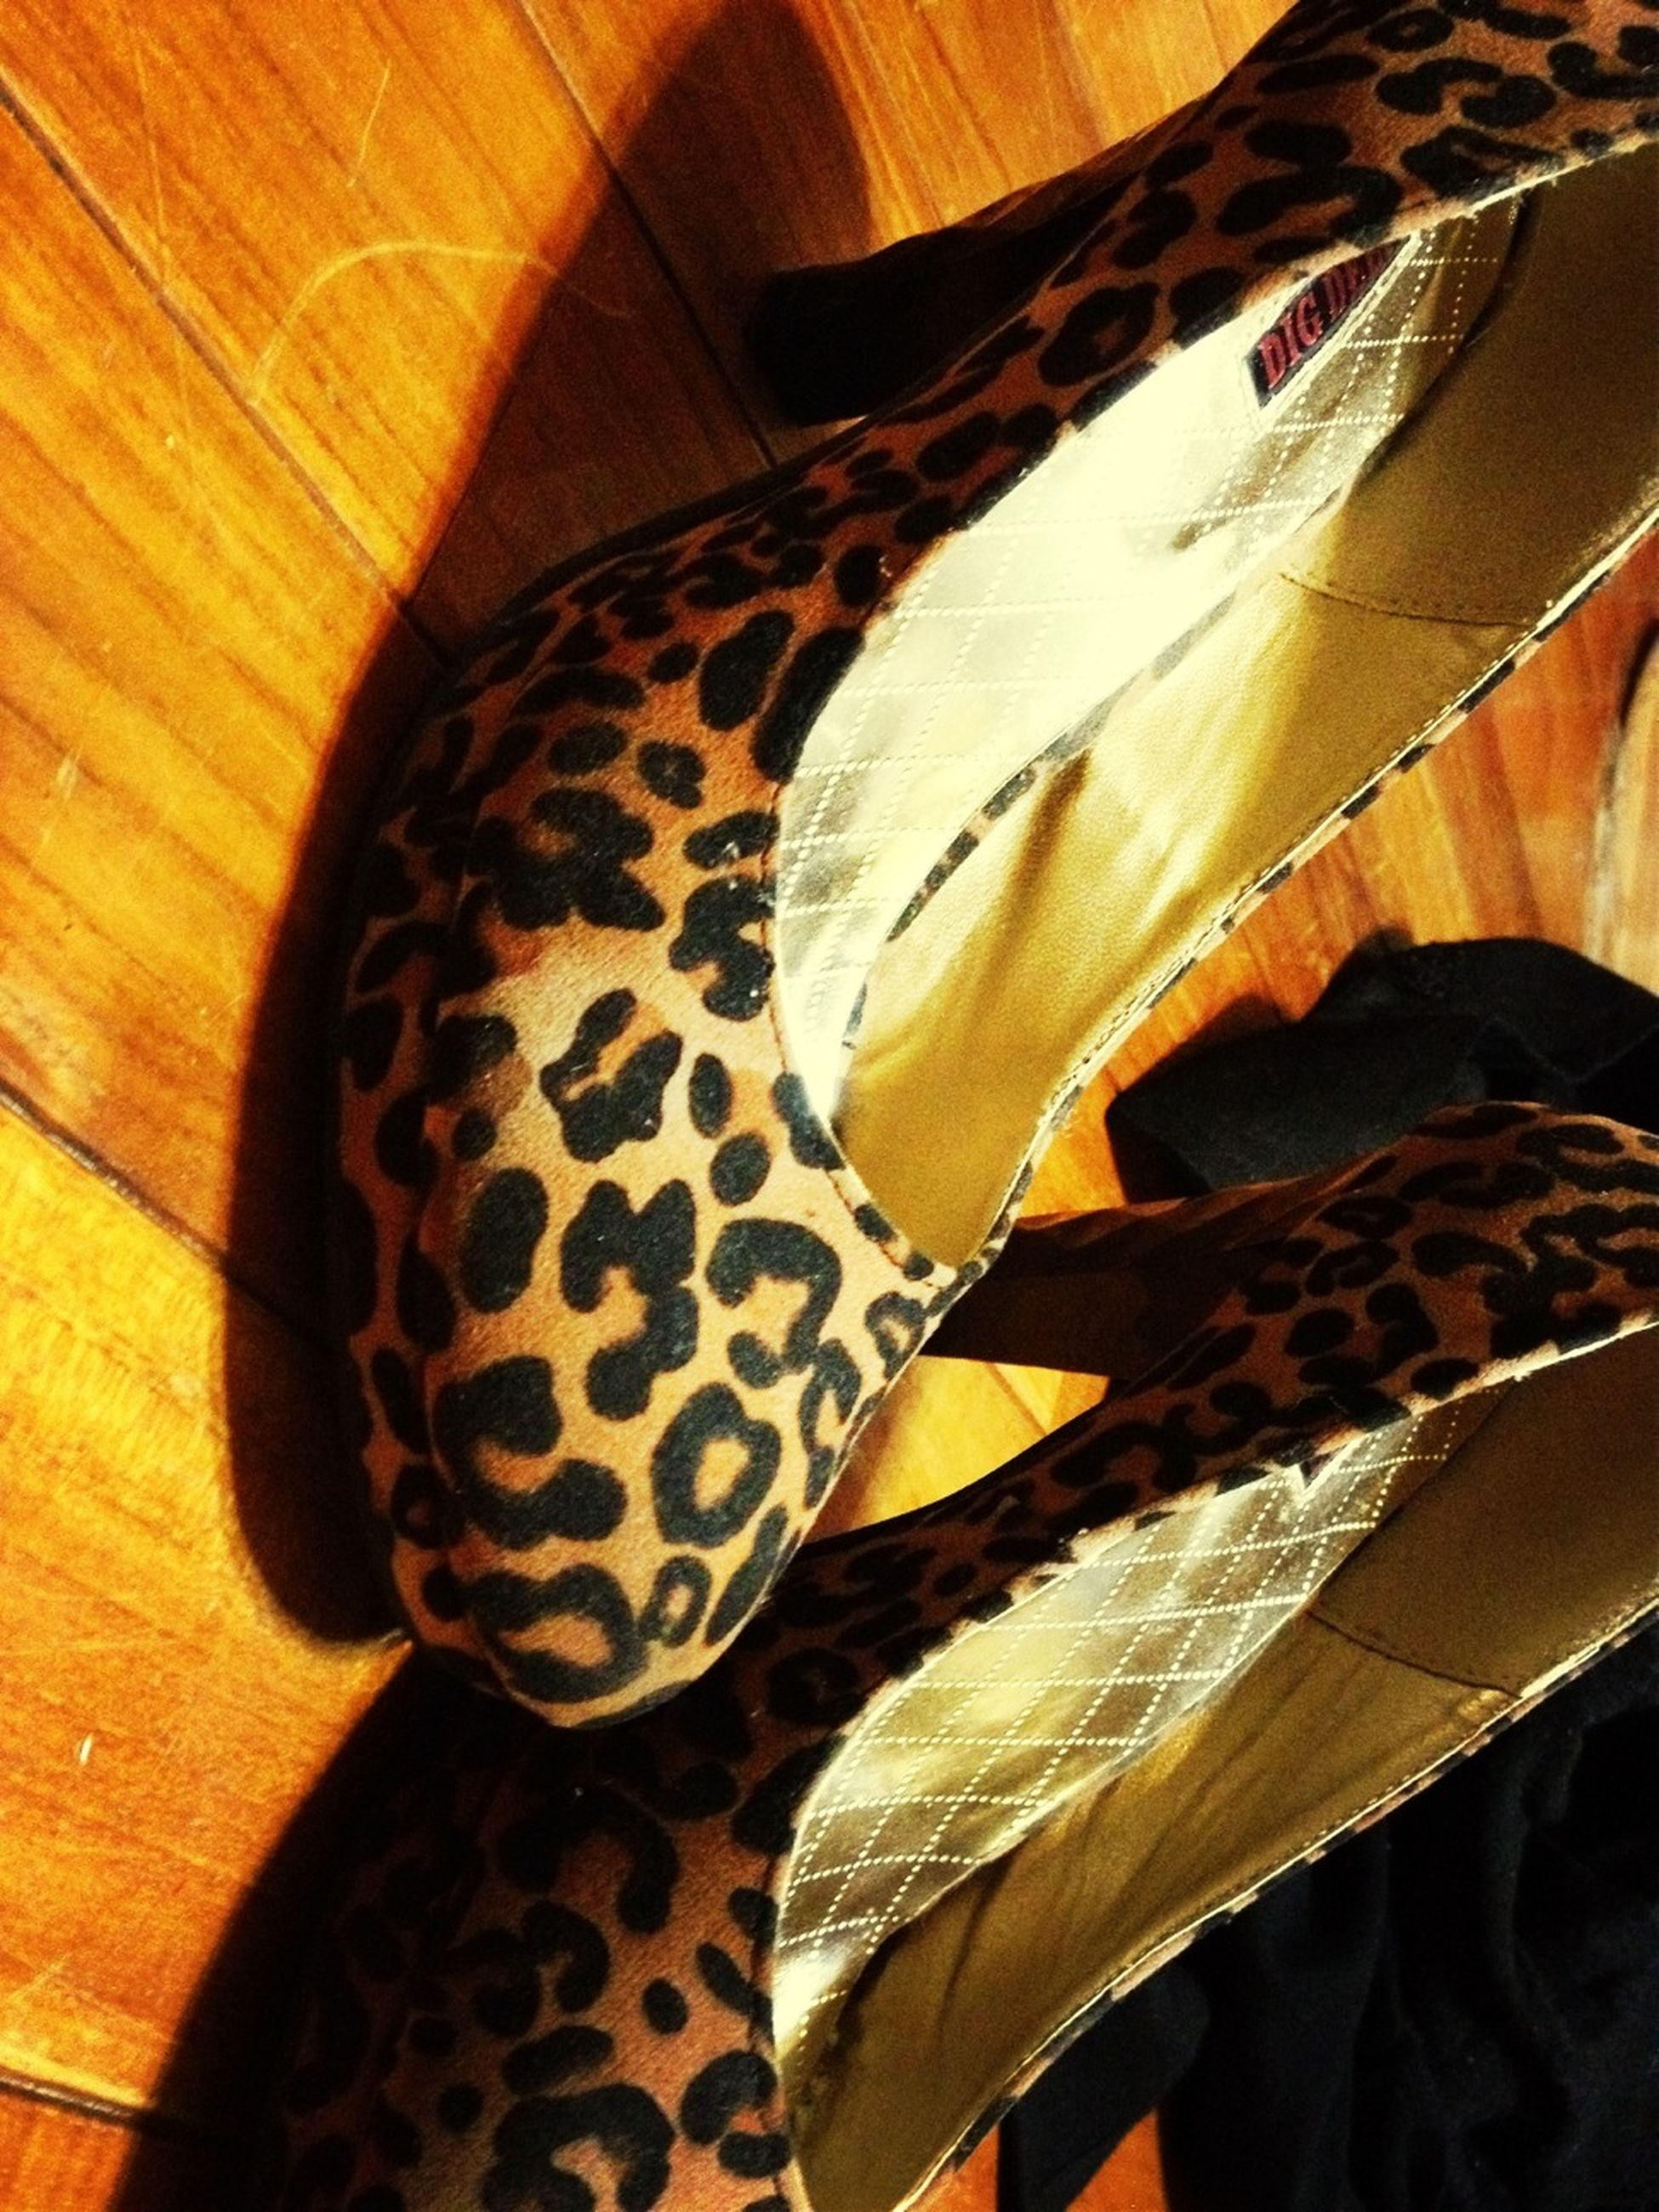 indoors, close-up, high angle view, natural pattern, still life, pattern, no people, leaf, table, nature, detail, day, sunlight, home interior, brown, animal themes, wood - material, one animal, feather, design